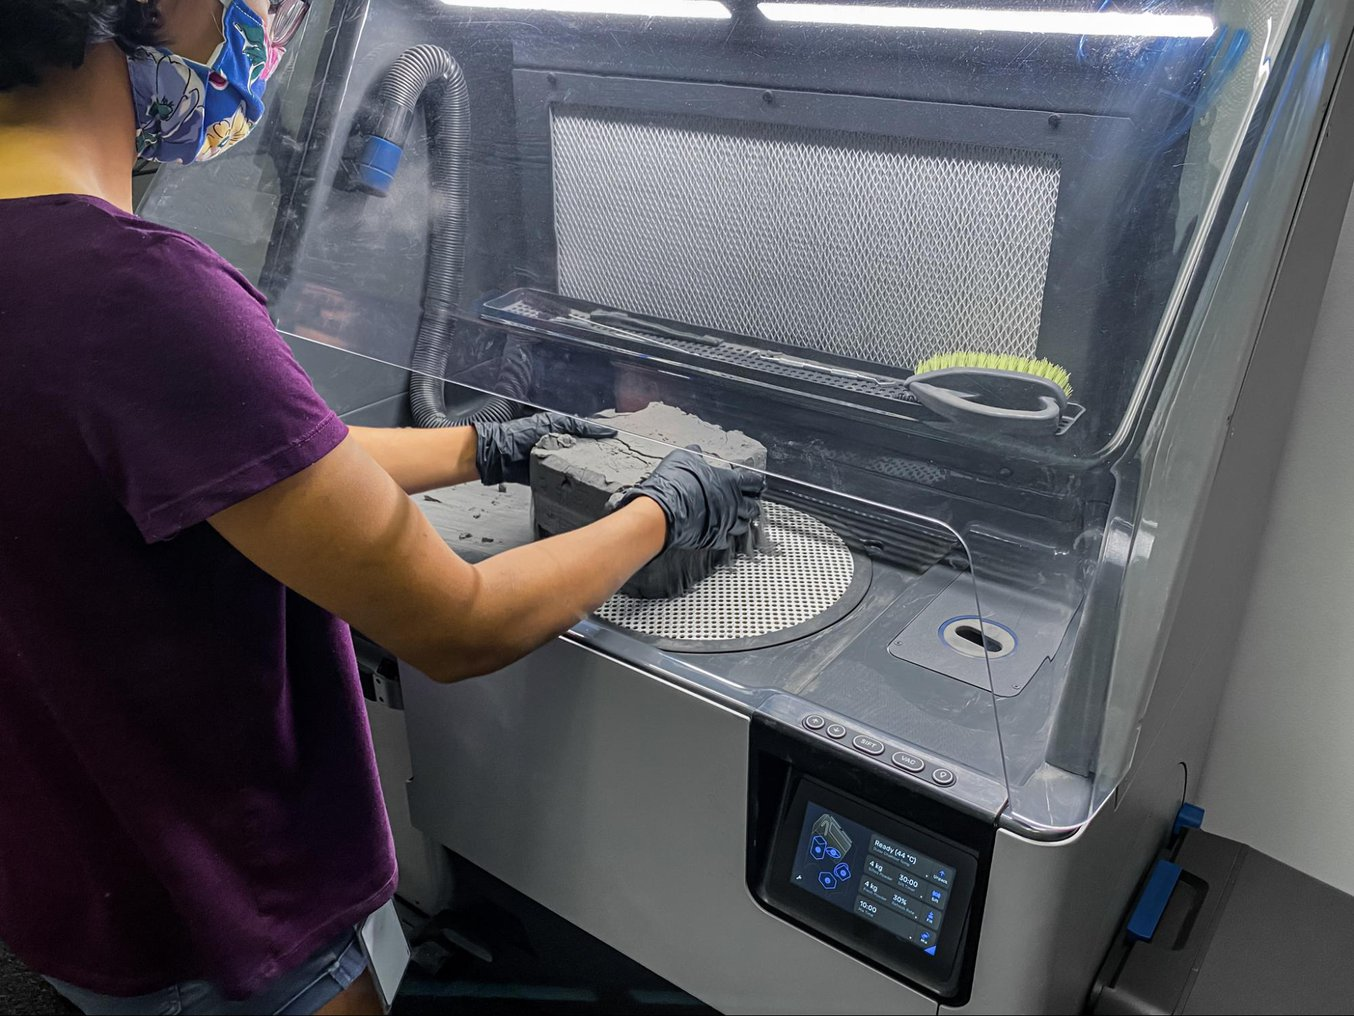 For the Fuse 1, Fuse Sift completes the SLS printing workflow. It offers a safe and efficient system for extracting prints and recycling powder.